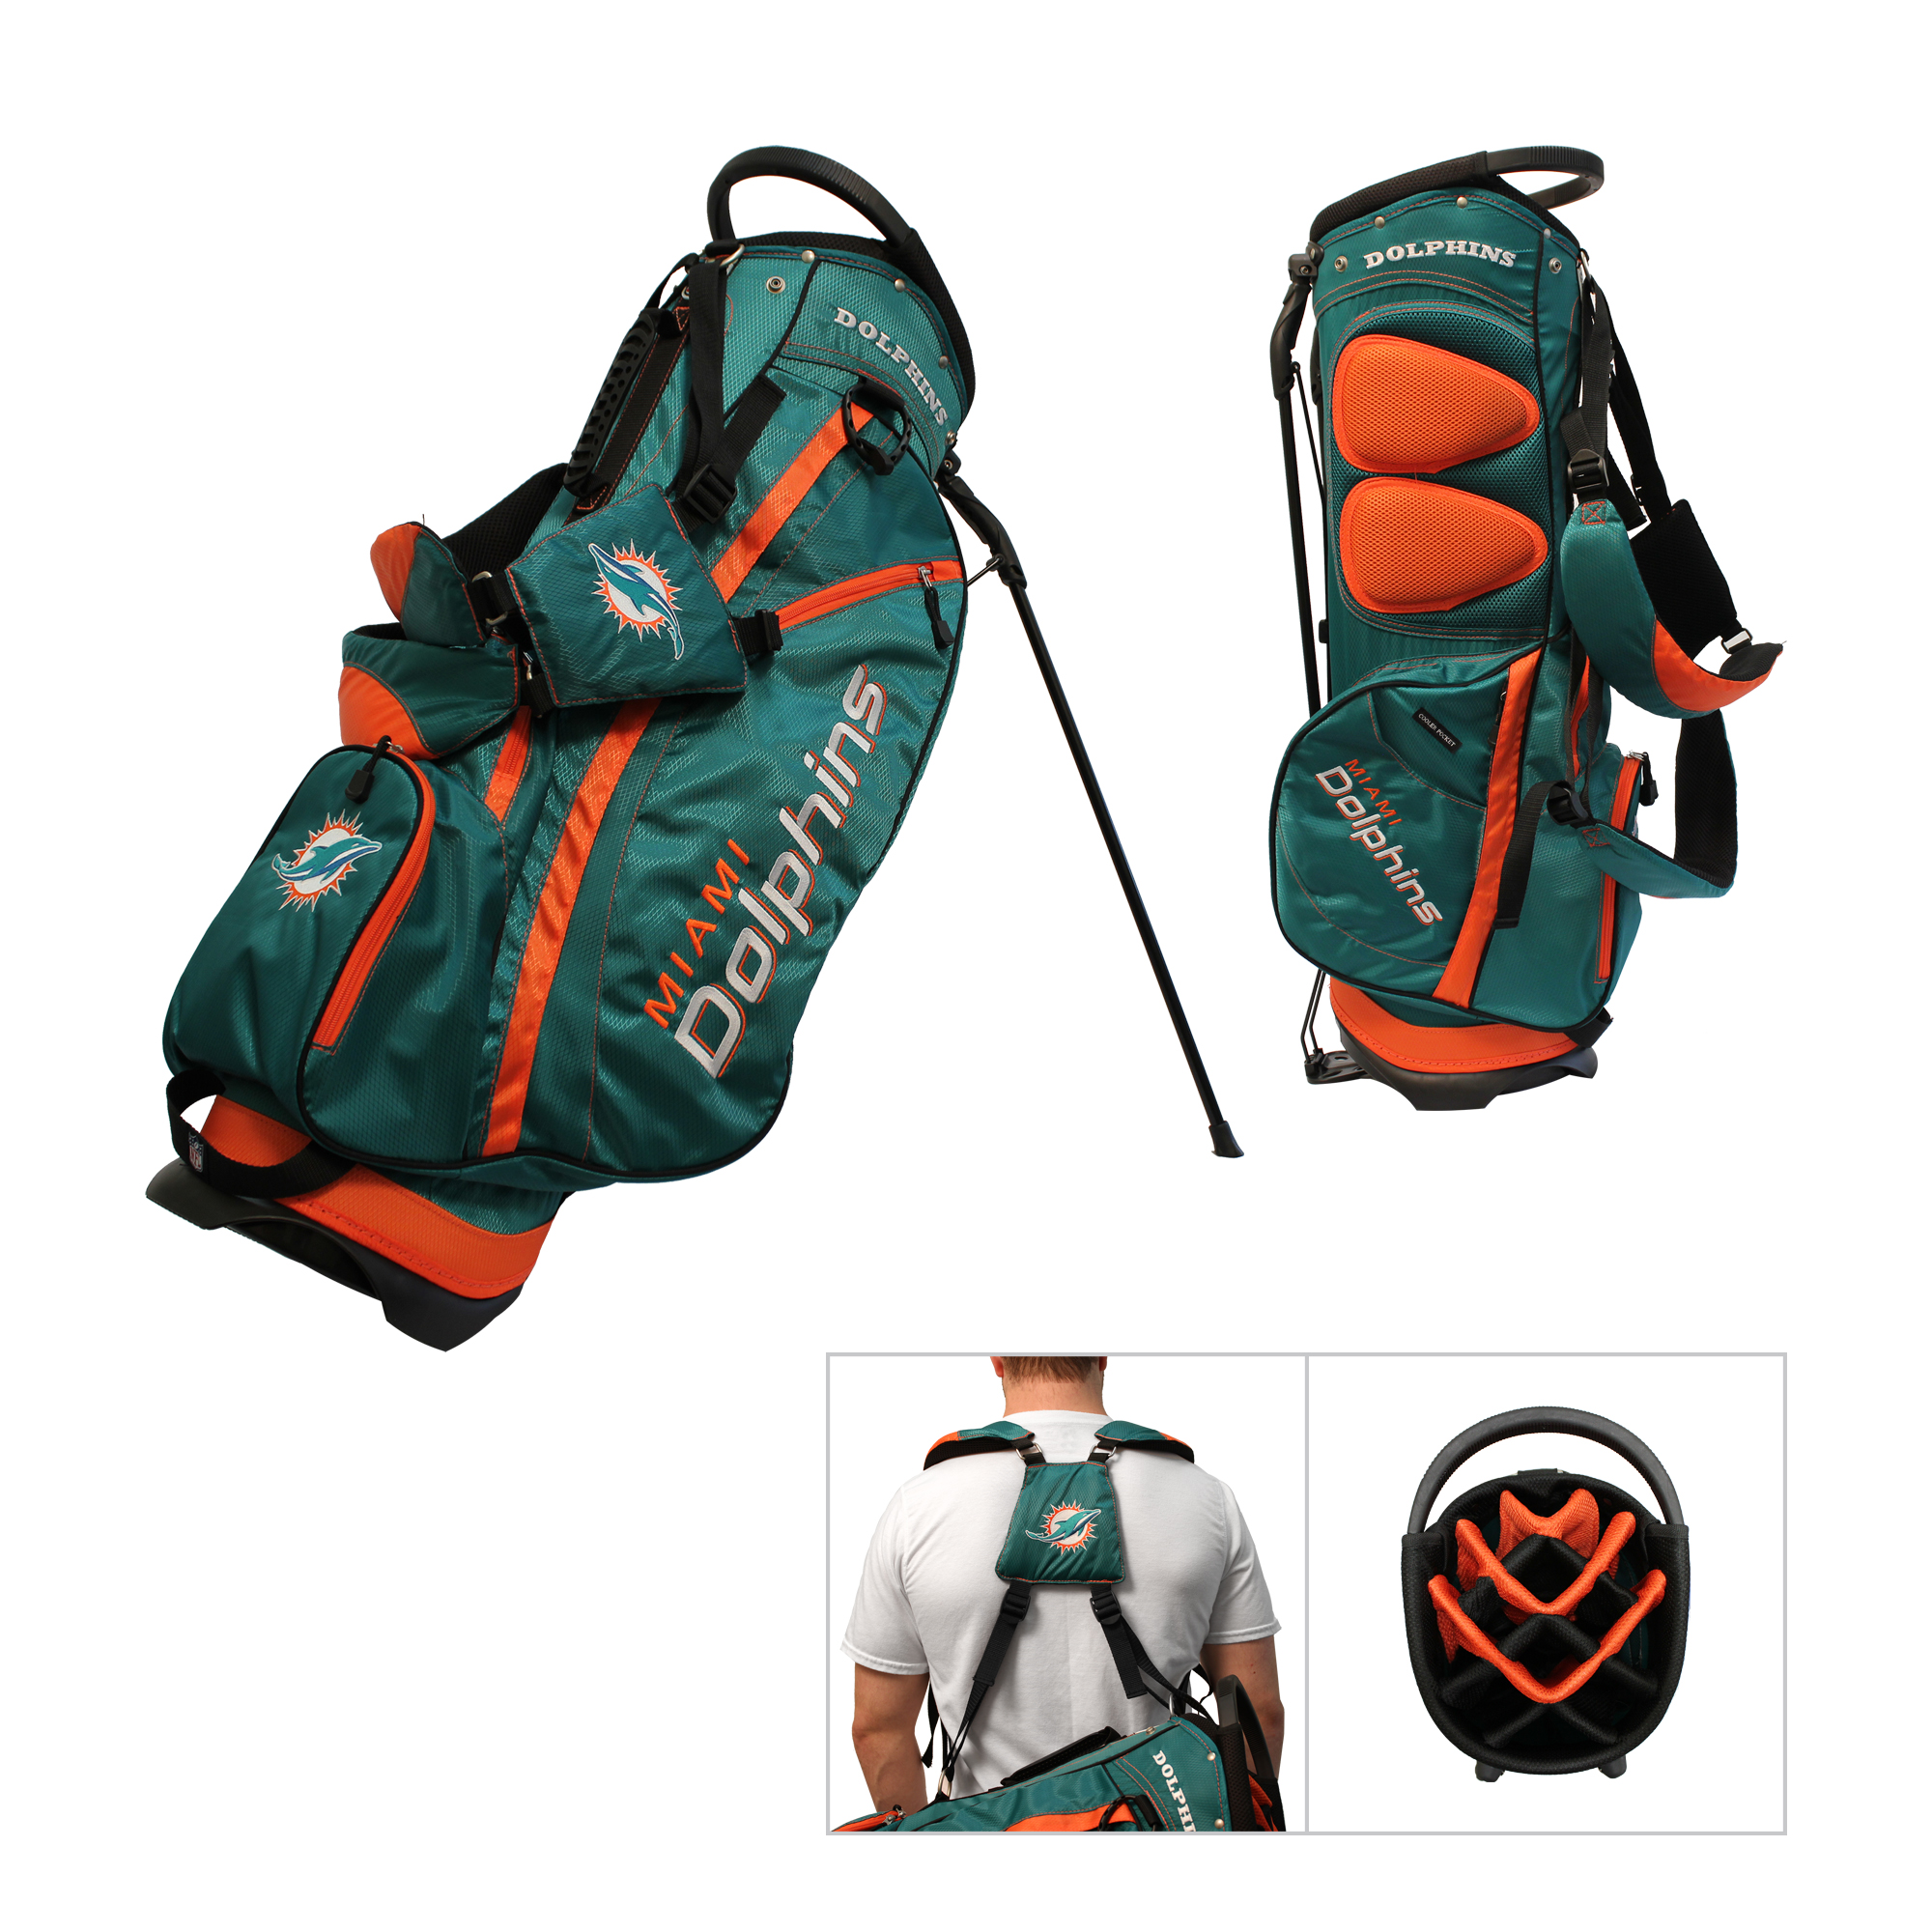 Miami Dolphins Nfl Stand Bag